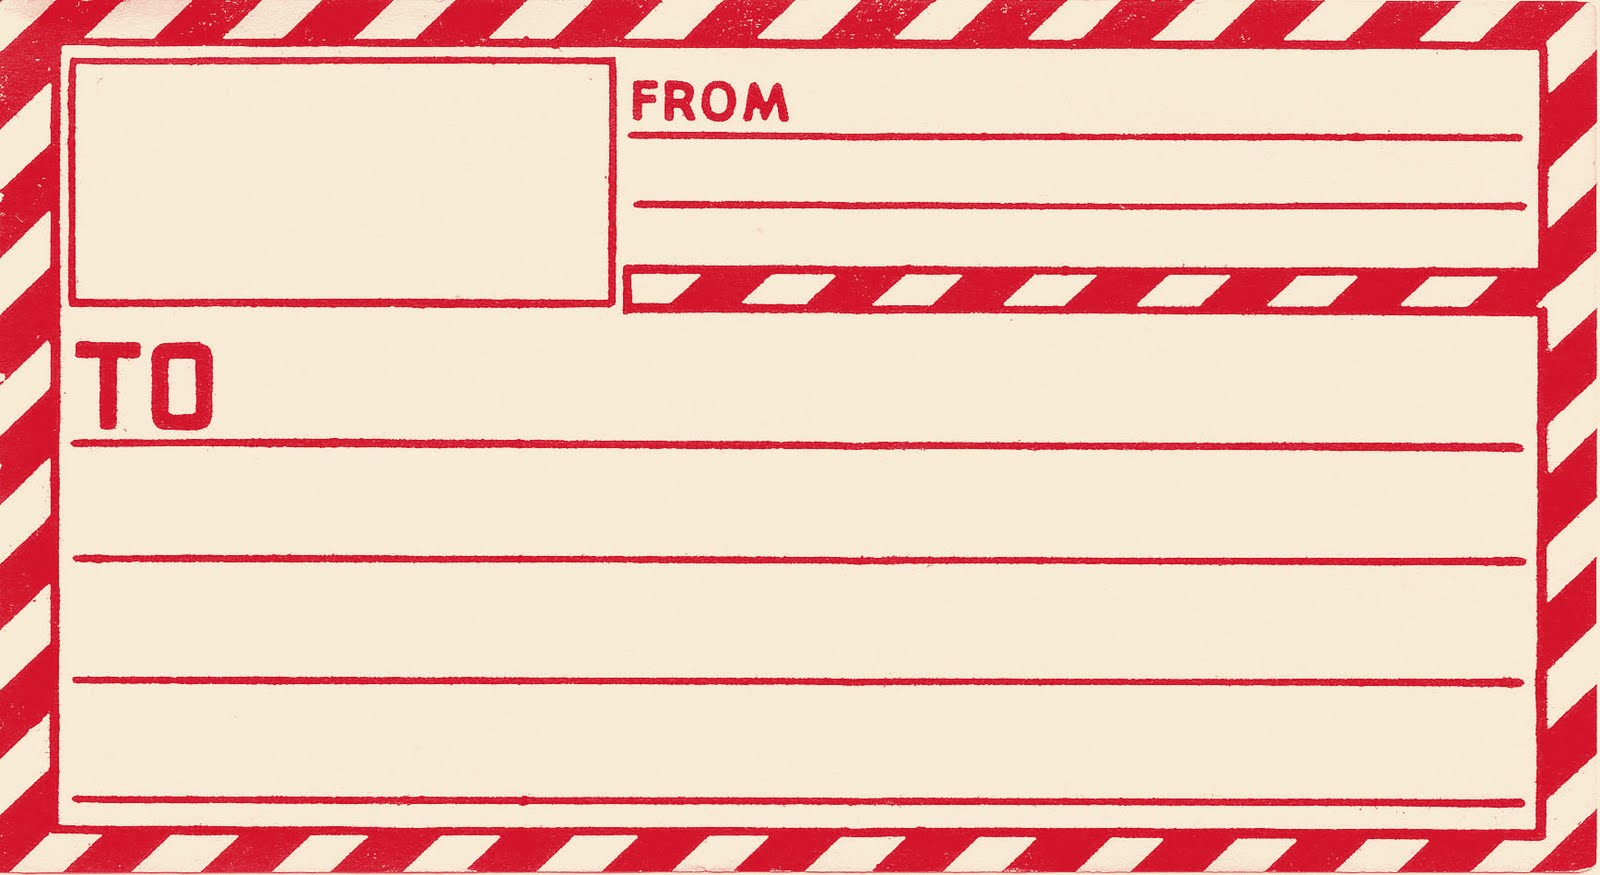 image library stock Mailing cliparts zone . Address label clipart